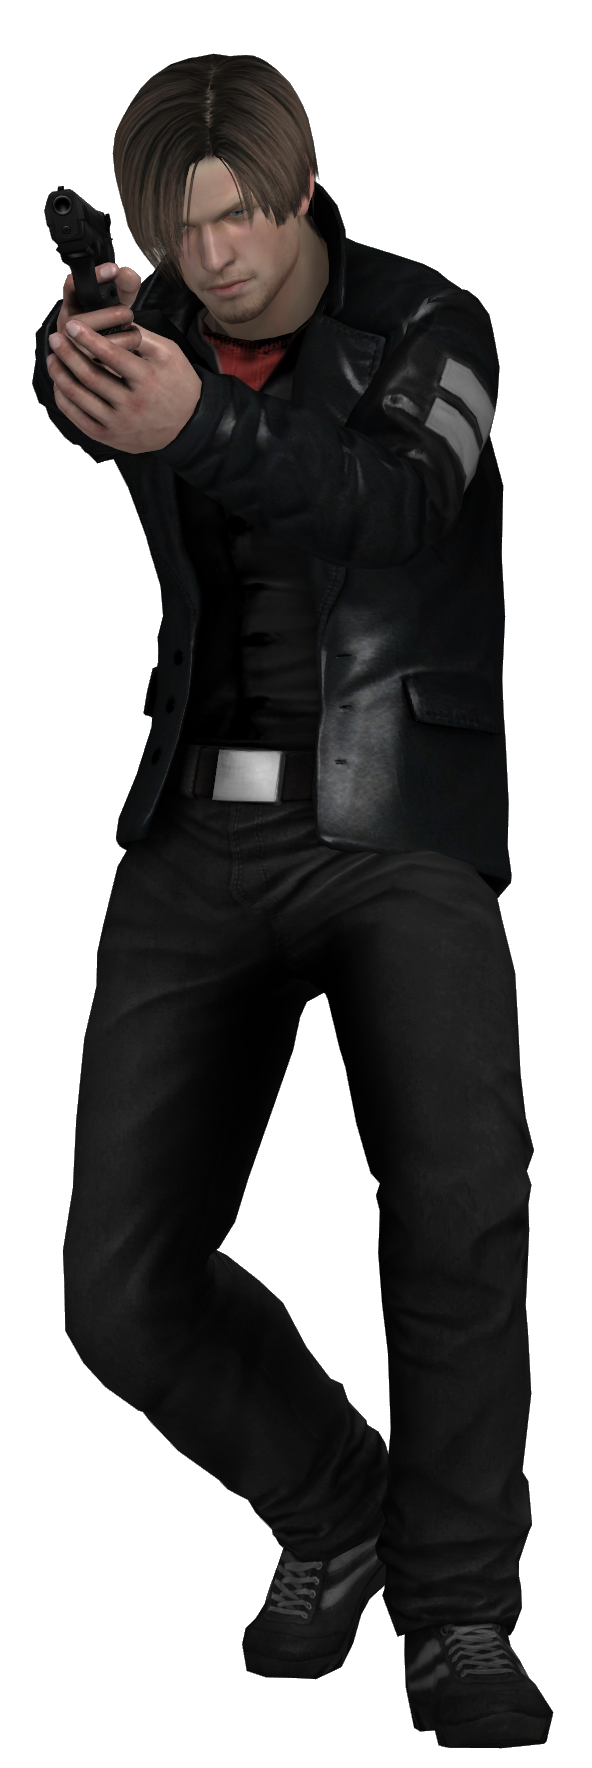 Resident evil 6 leon png. Image result for zombies